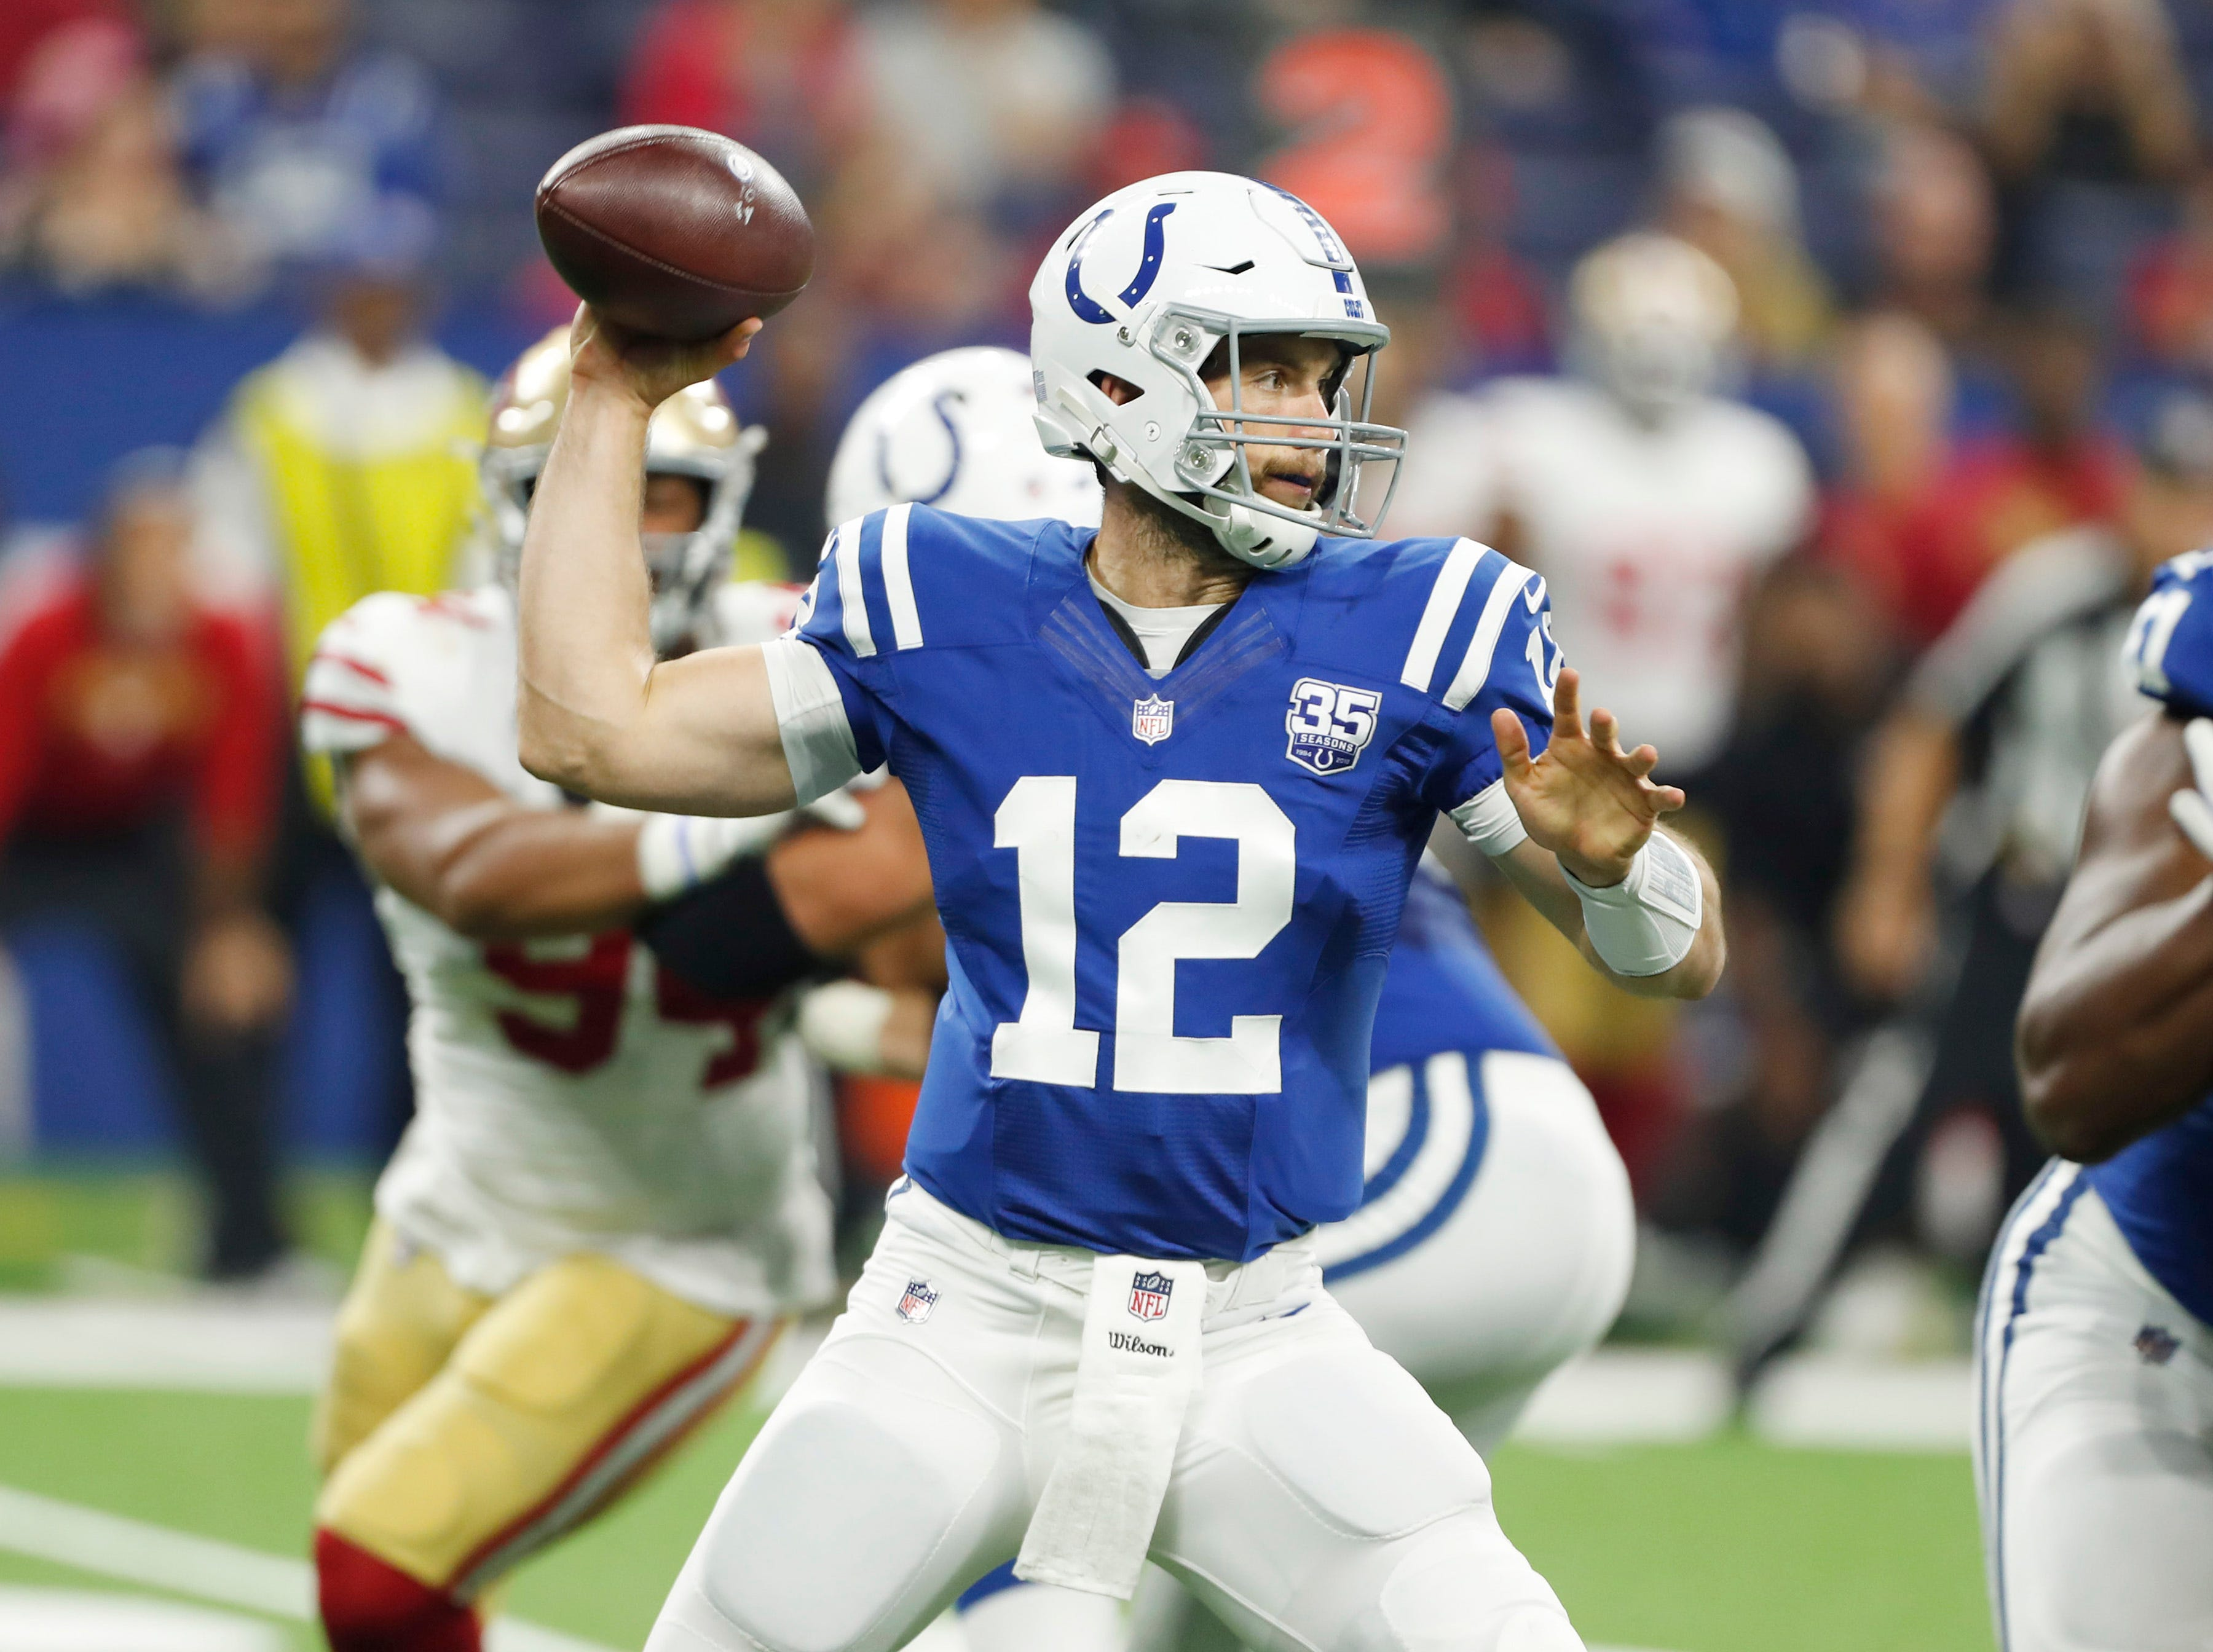 Fantasy football stock watch: Andrew Luck among QBs on the rise